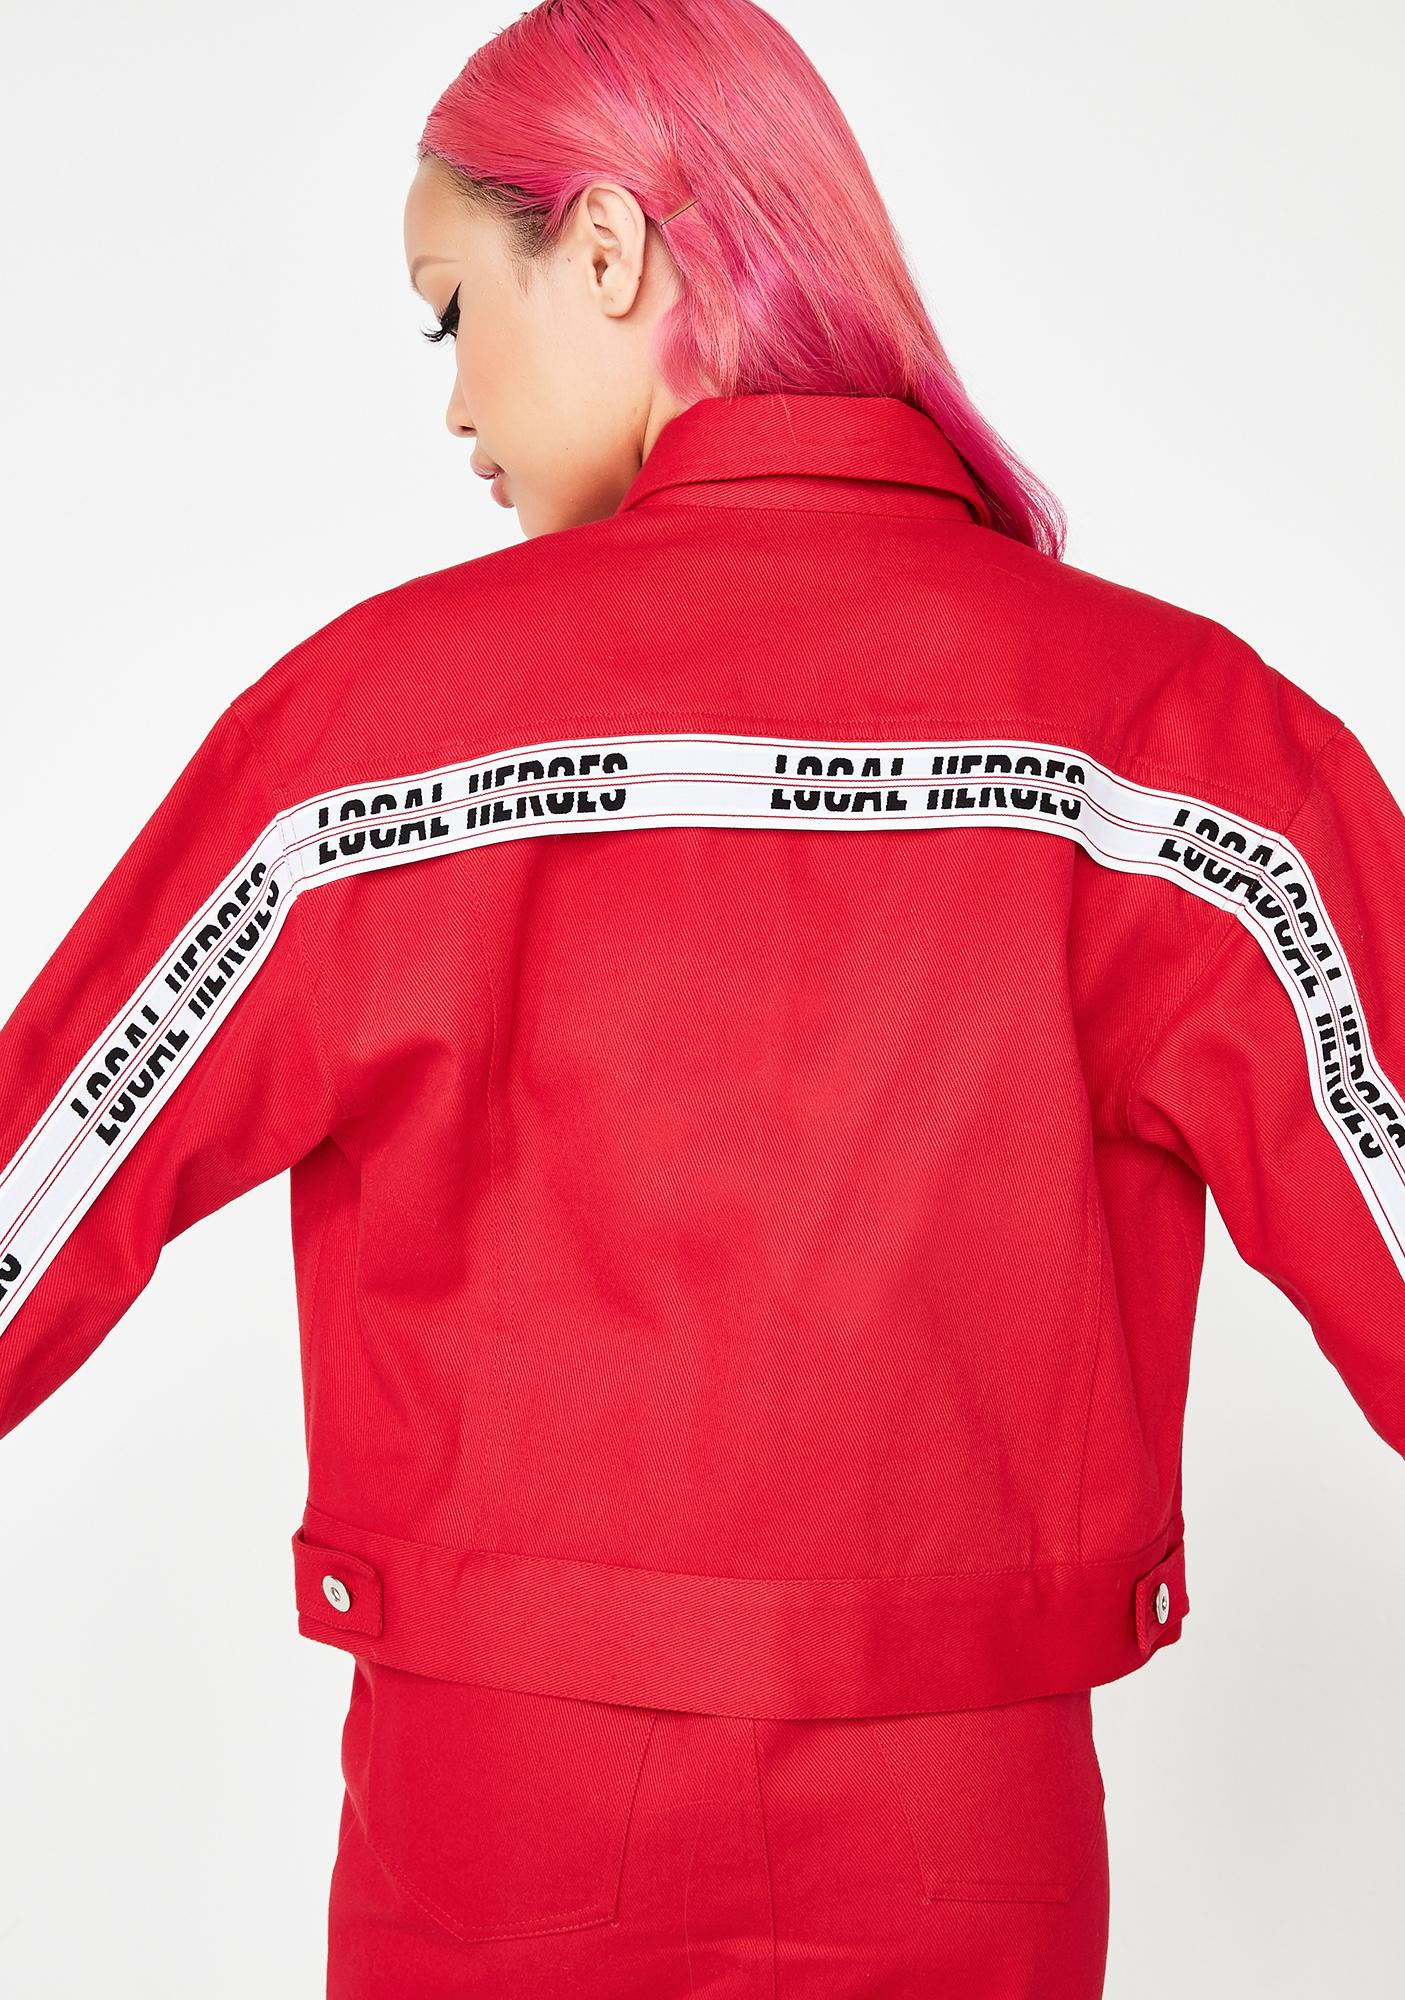 Local Heroes Red Hot Jacket